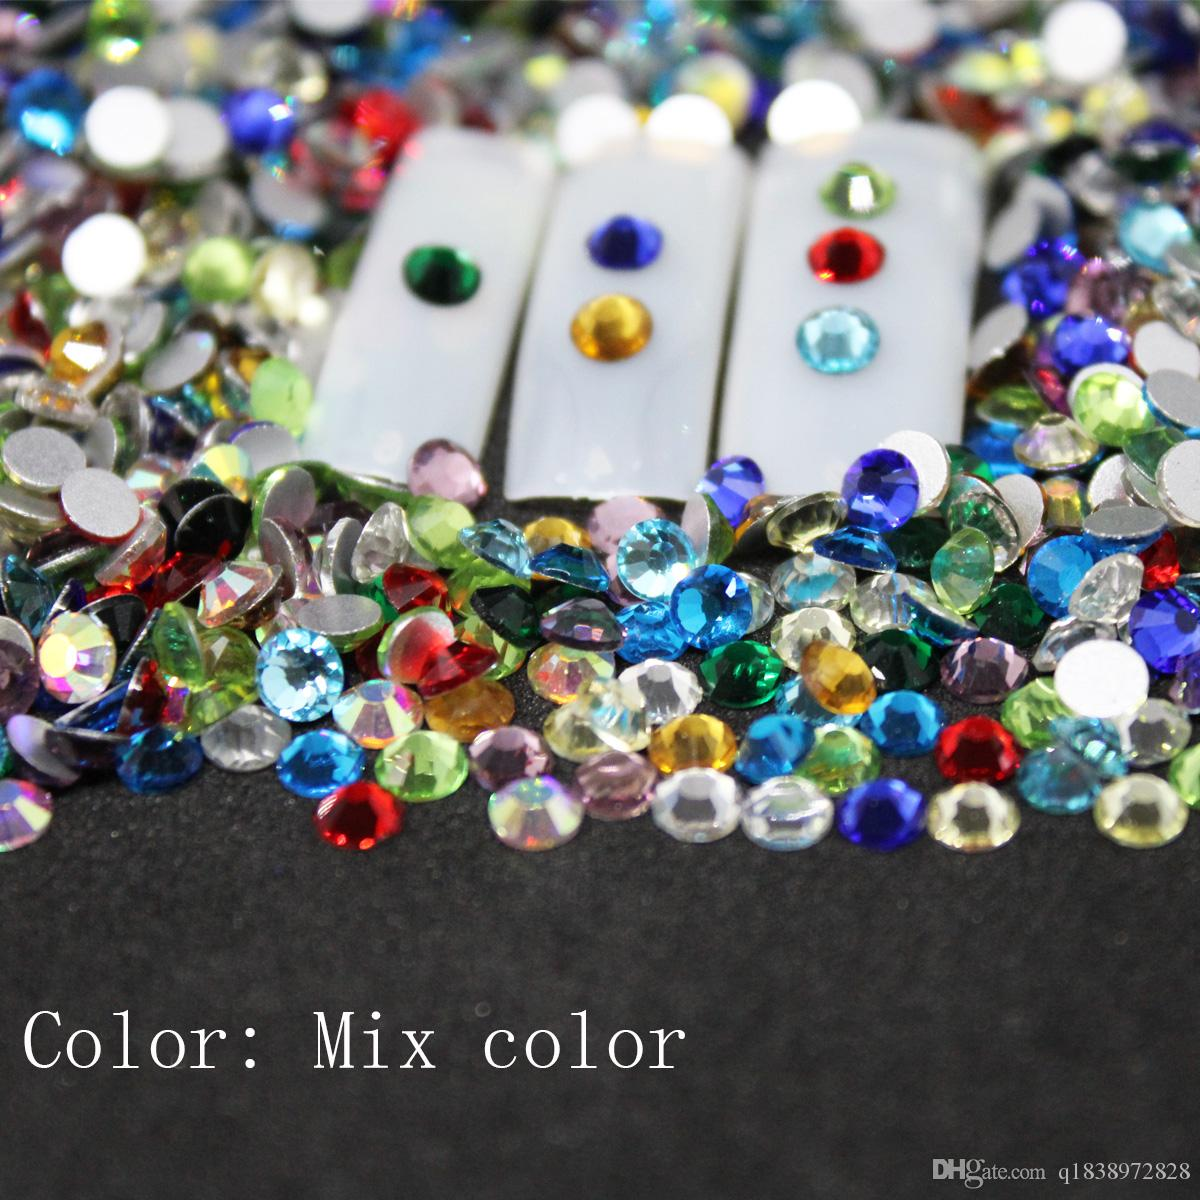 SS3 SS30 Mix Color Rhinestones Back Flat Round Nail Art Decorations And Stones  Non Hotfix Rhinestones Crystals For DIY Glass Fake Nails Nail Design Ideas  ... 4d3305640e5b